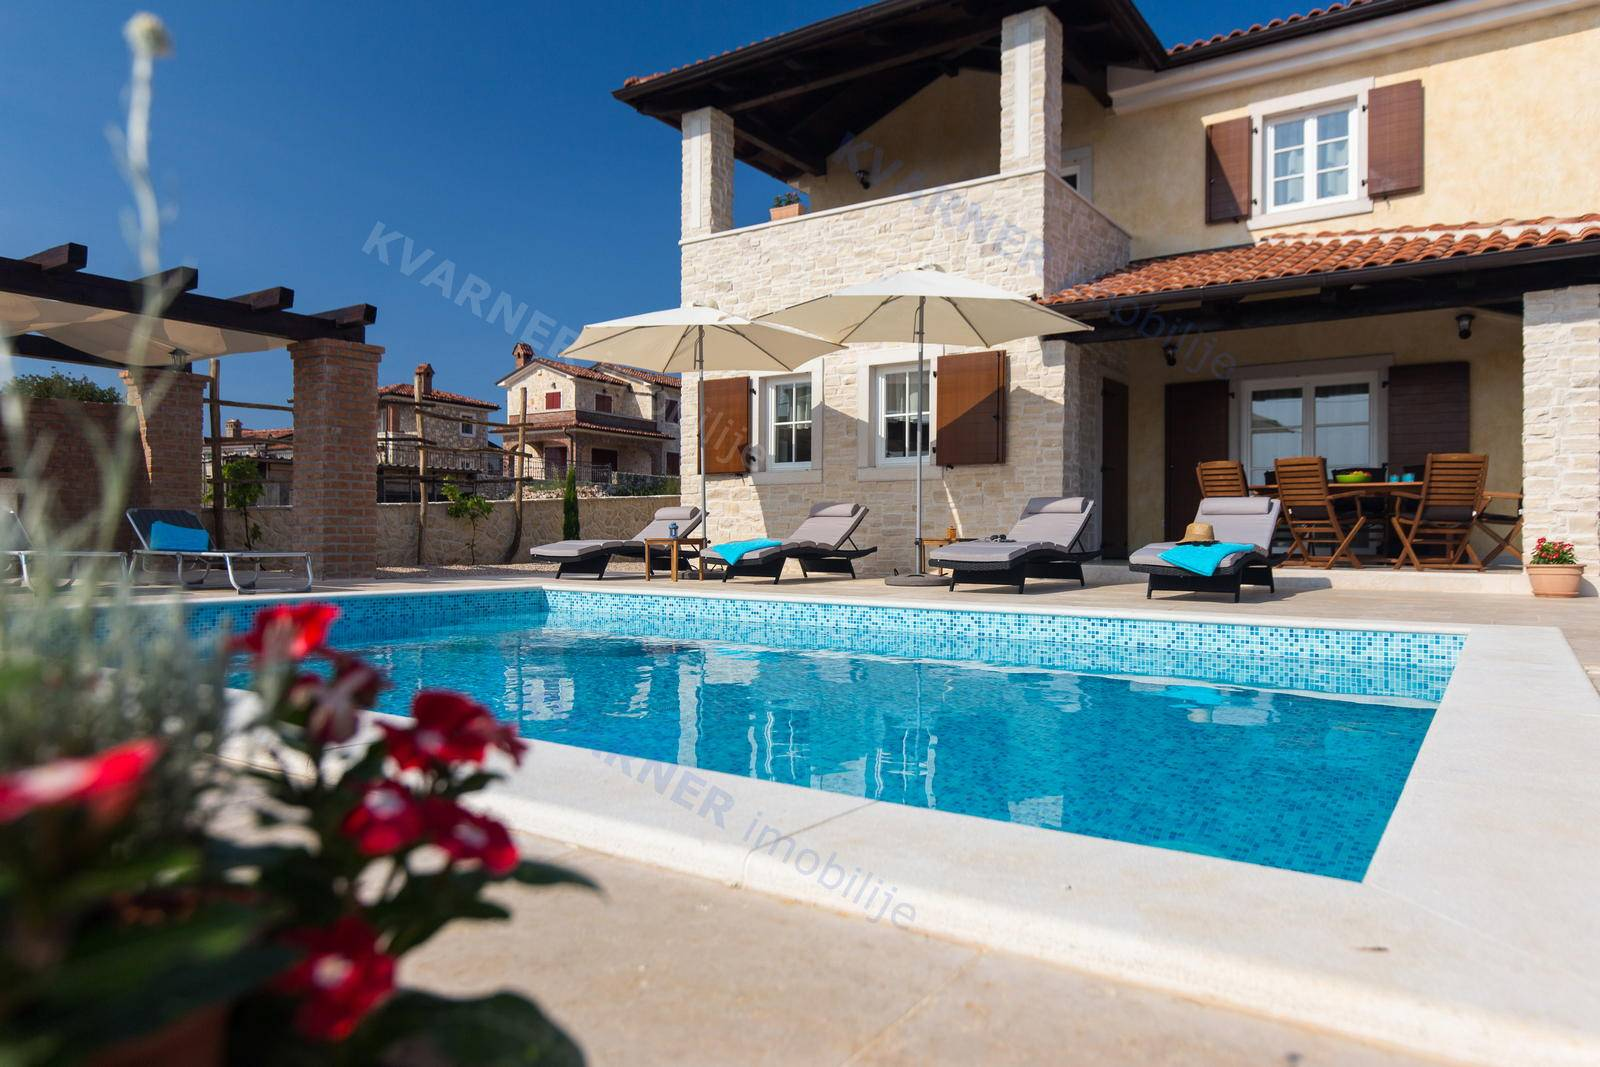 KRK - house with garden and swimming pool | Kvarner imobilije